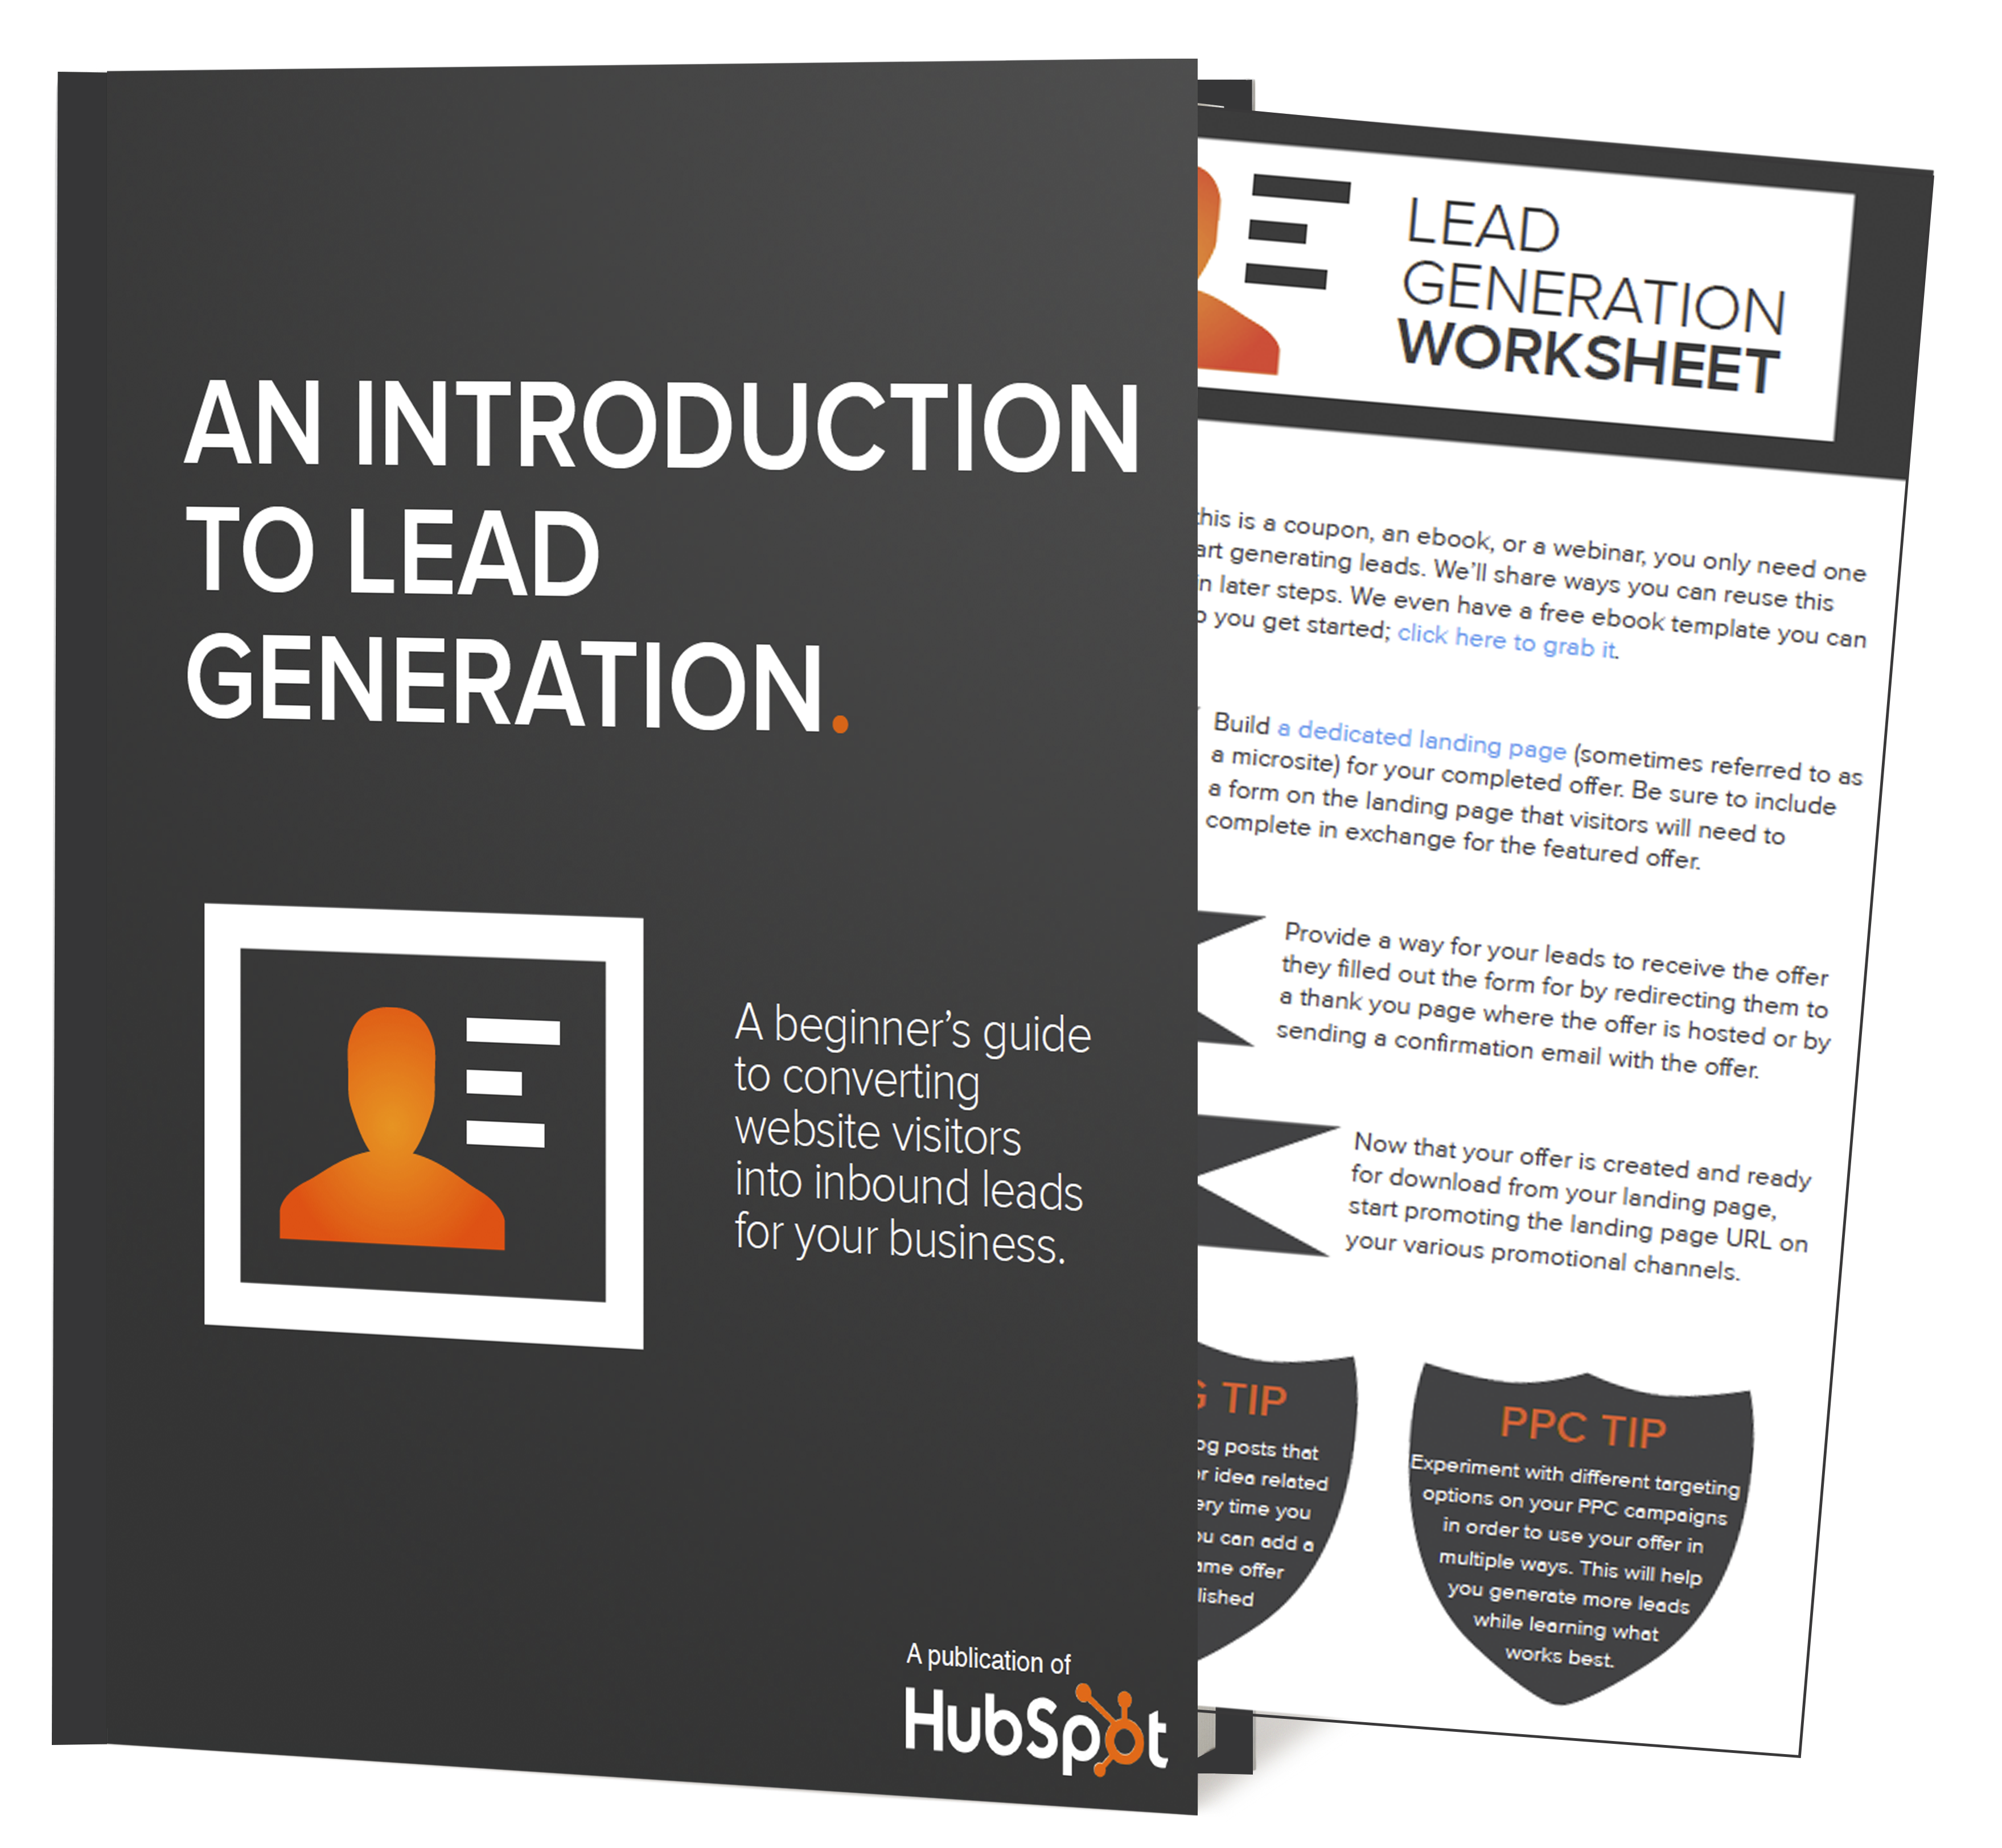 An Introduction to Lead Generation